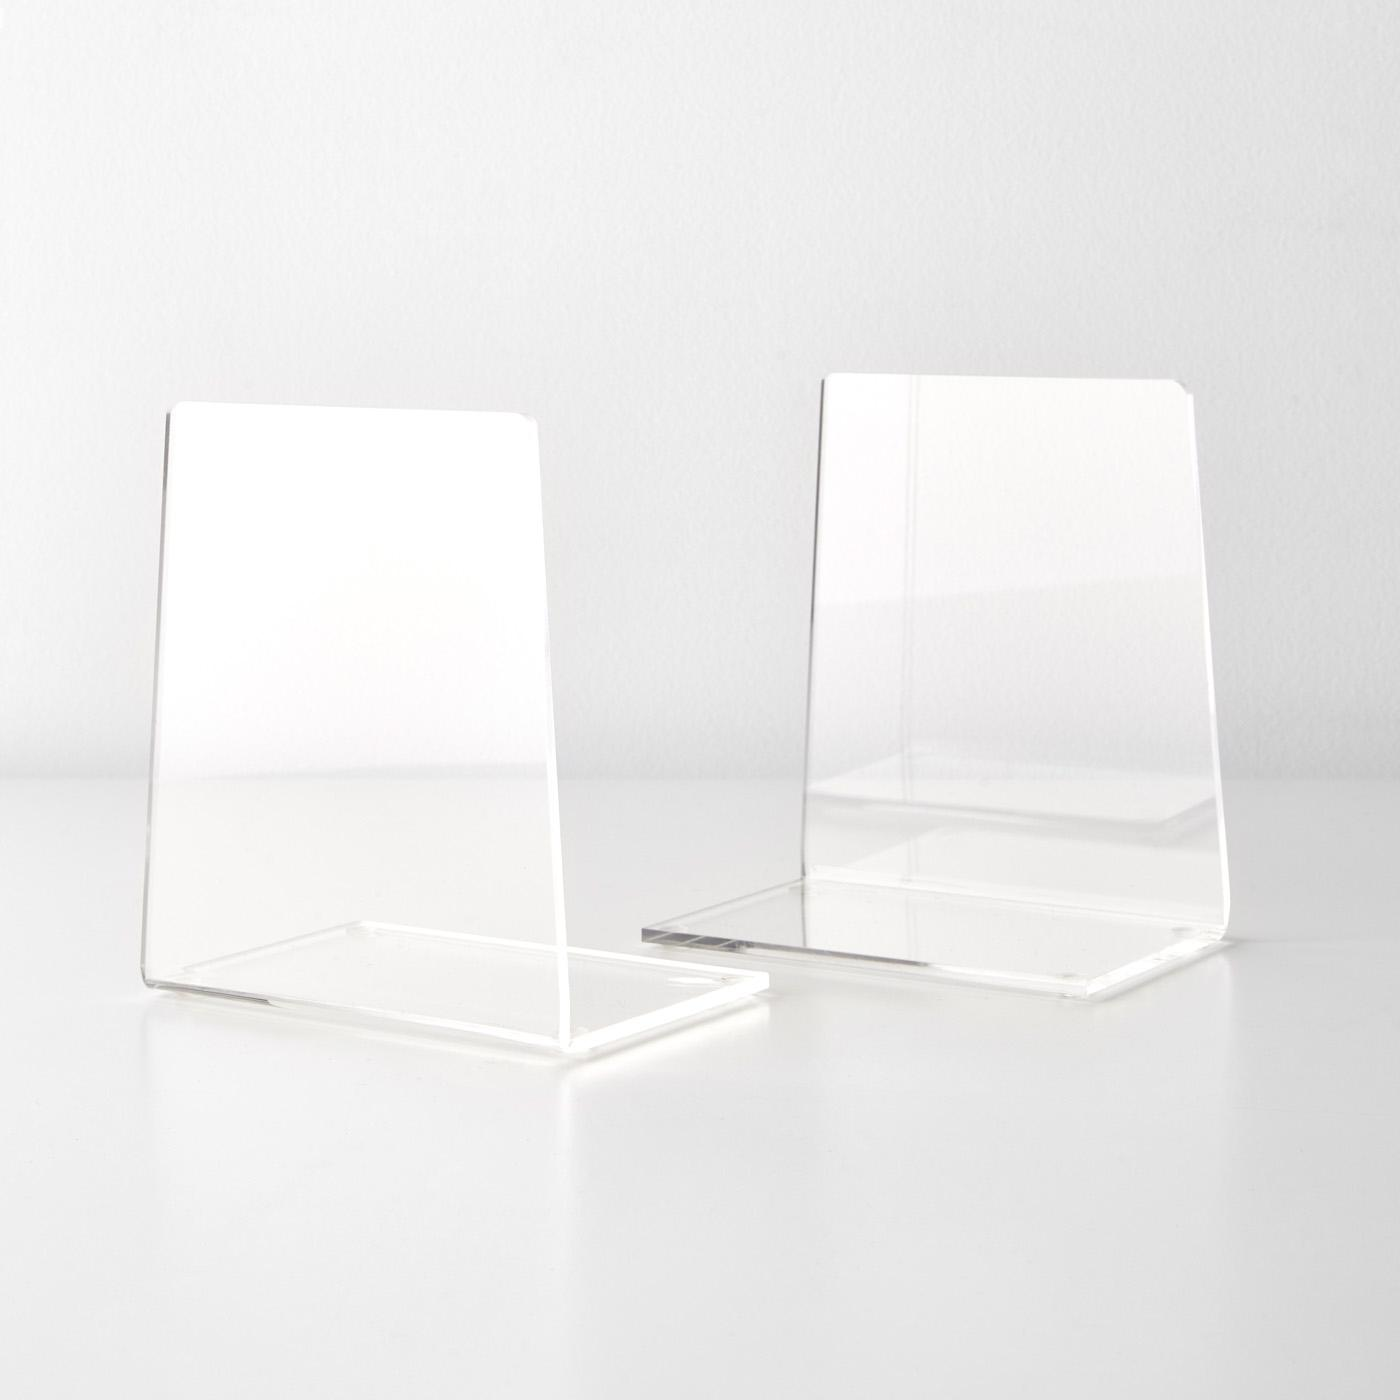 Library Office School Supplies Stationery Gift Plastic Acrylic Bookend for Heavy Books Ends and Desktop Organizer Lulonpon 2pcs Bookends Clear Bookends Decor for Shelves